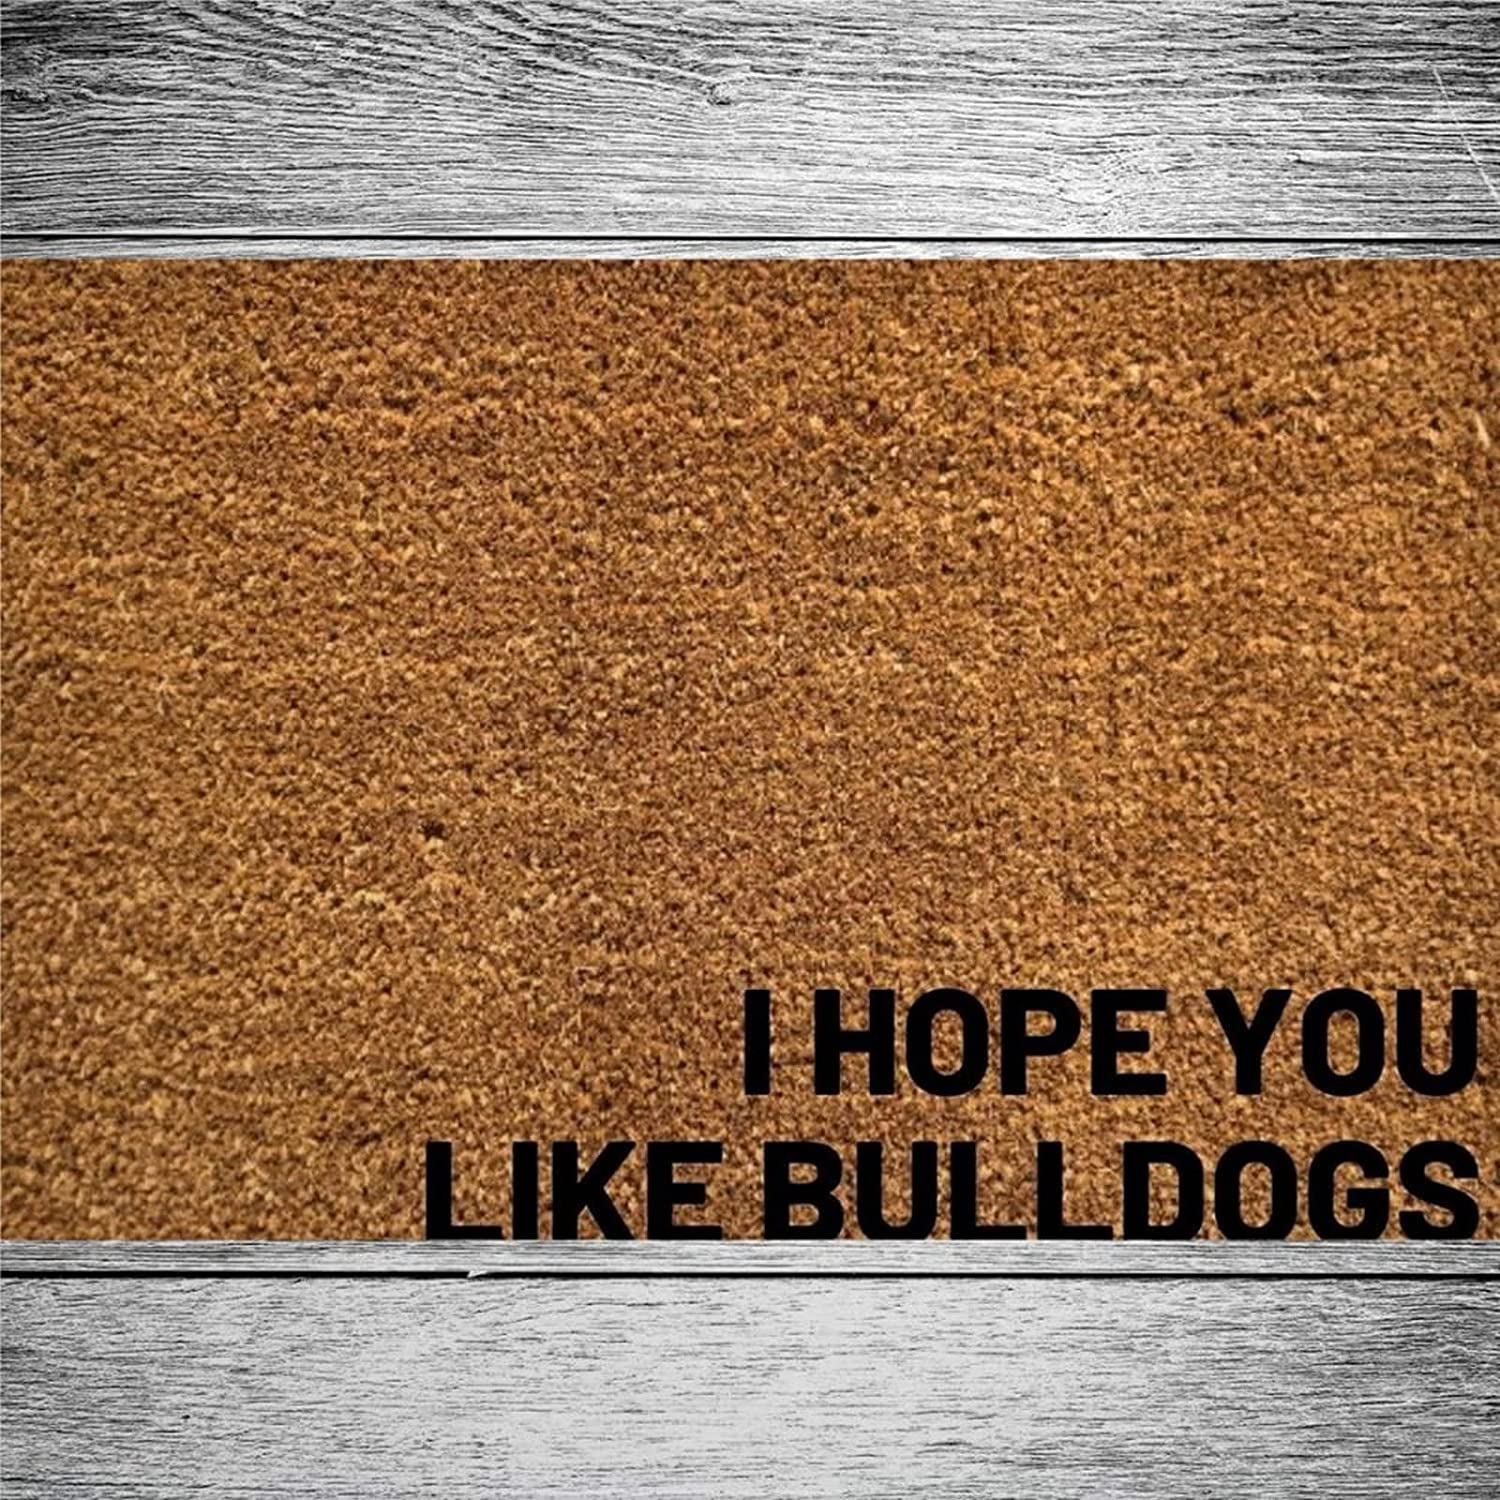 I Limited time sale Hope You Cheap bargain Like Bulldogs Coir Mats f Door Welcome Rustic Doormat